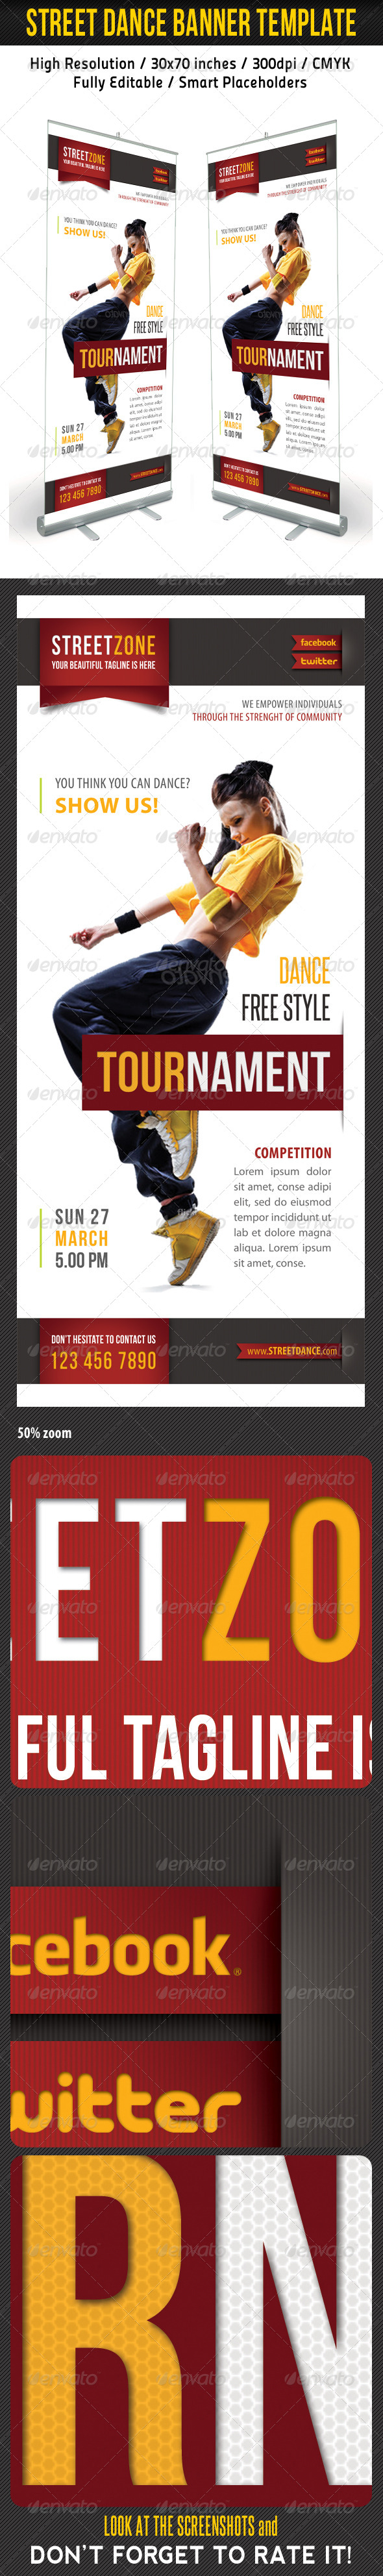 Dance Banner Template 02 - Signage Print Templates